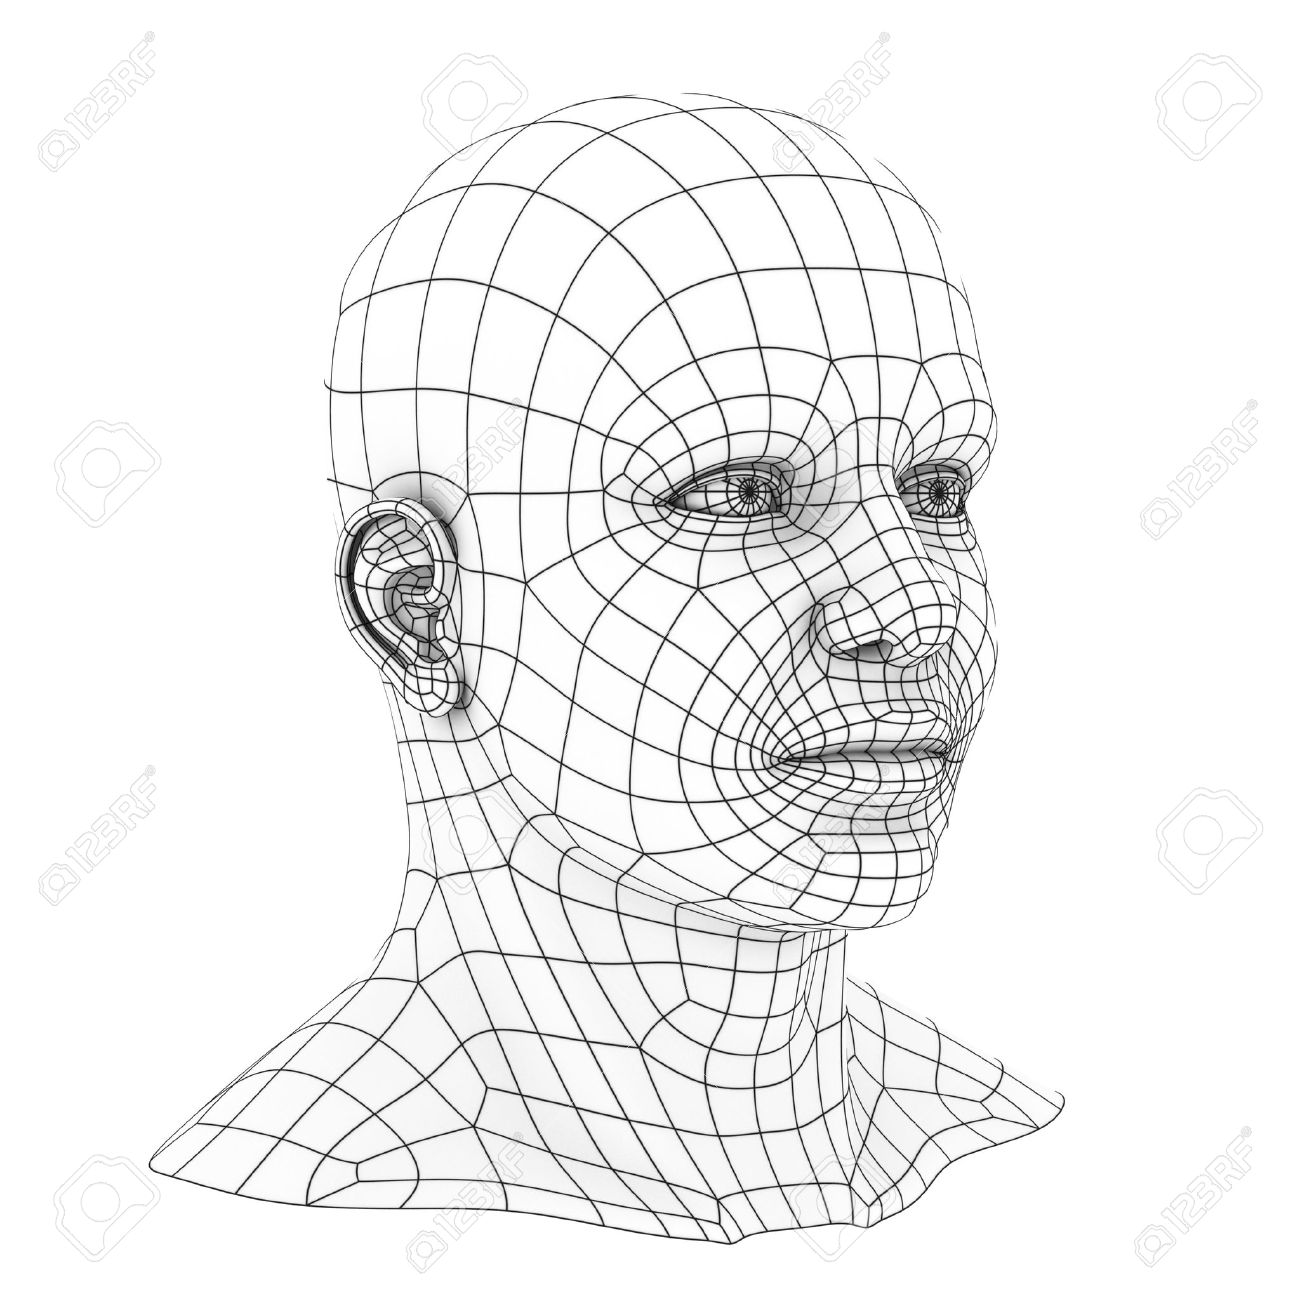 Human Head 3d Wireframe Stock Photo, Picture And Royalty Free Image ...